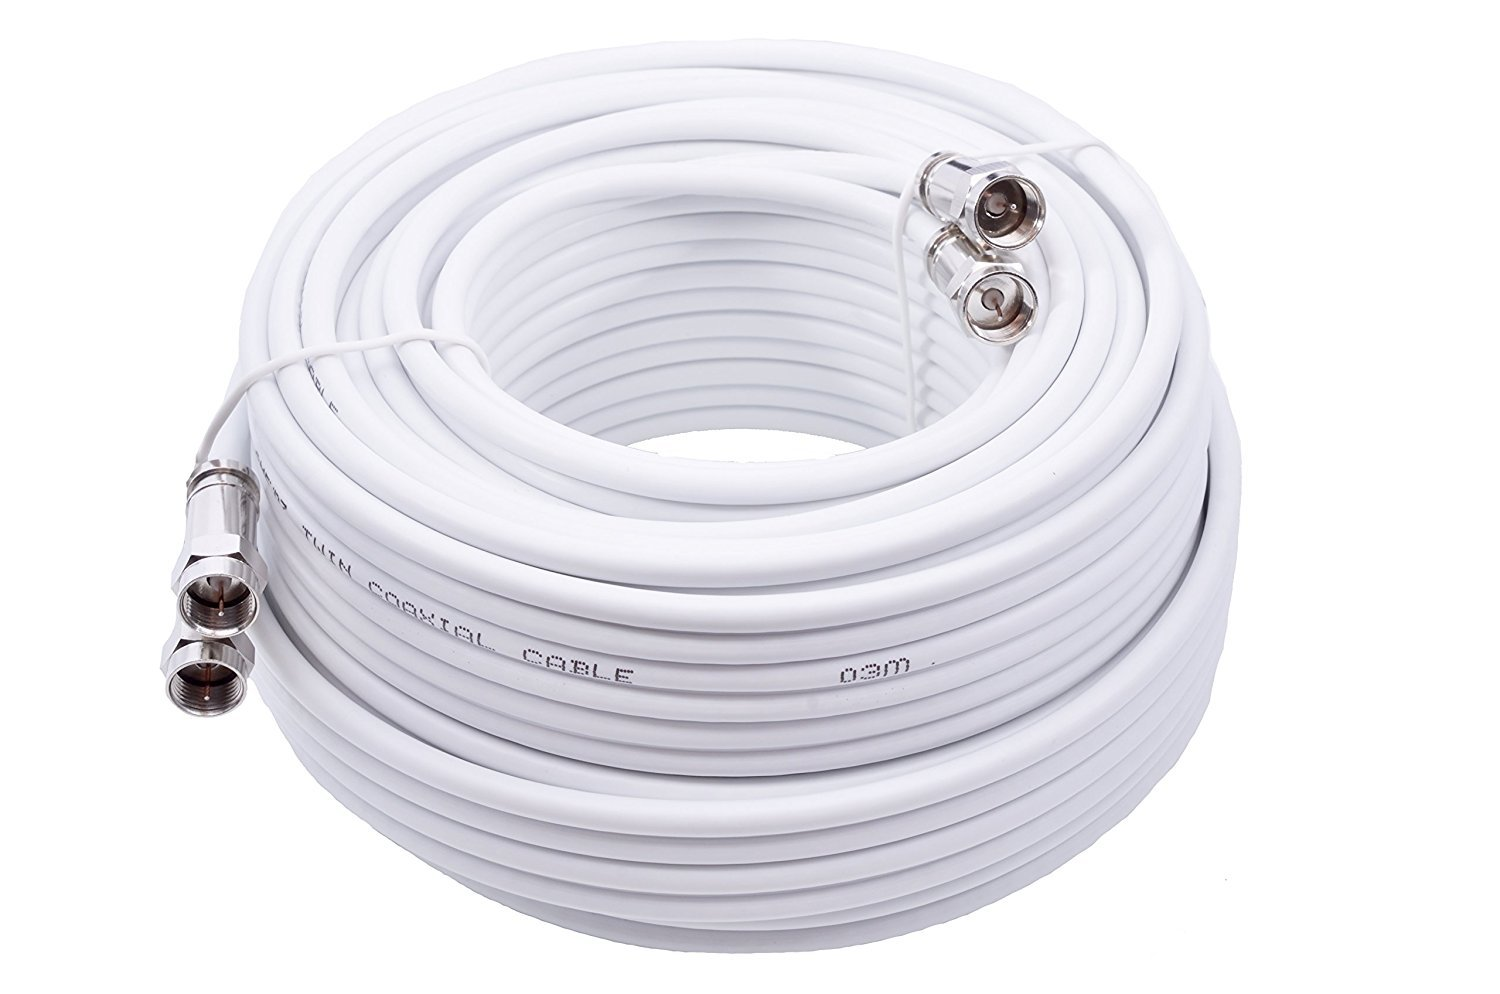 Black Male Connections Smedz 20 m Fully Assembled Digital TV Aerial Cable Extension Kit with Male